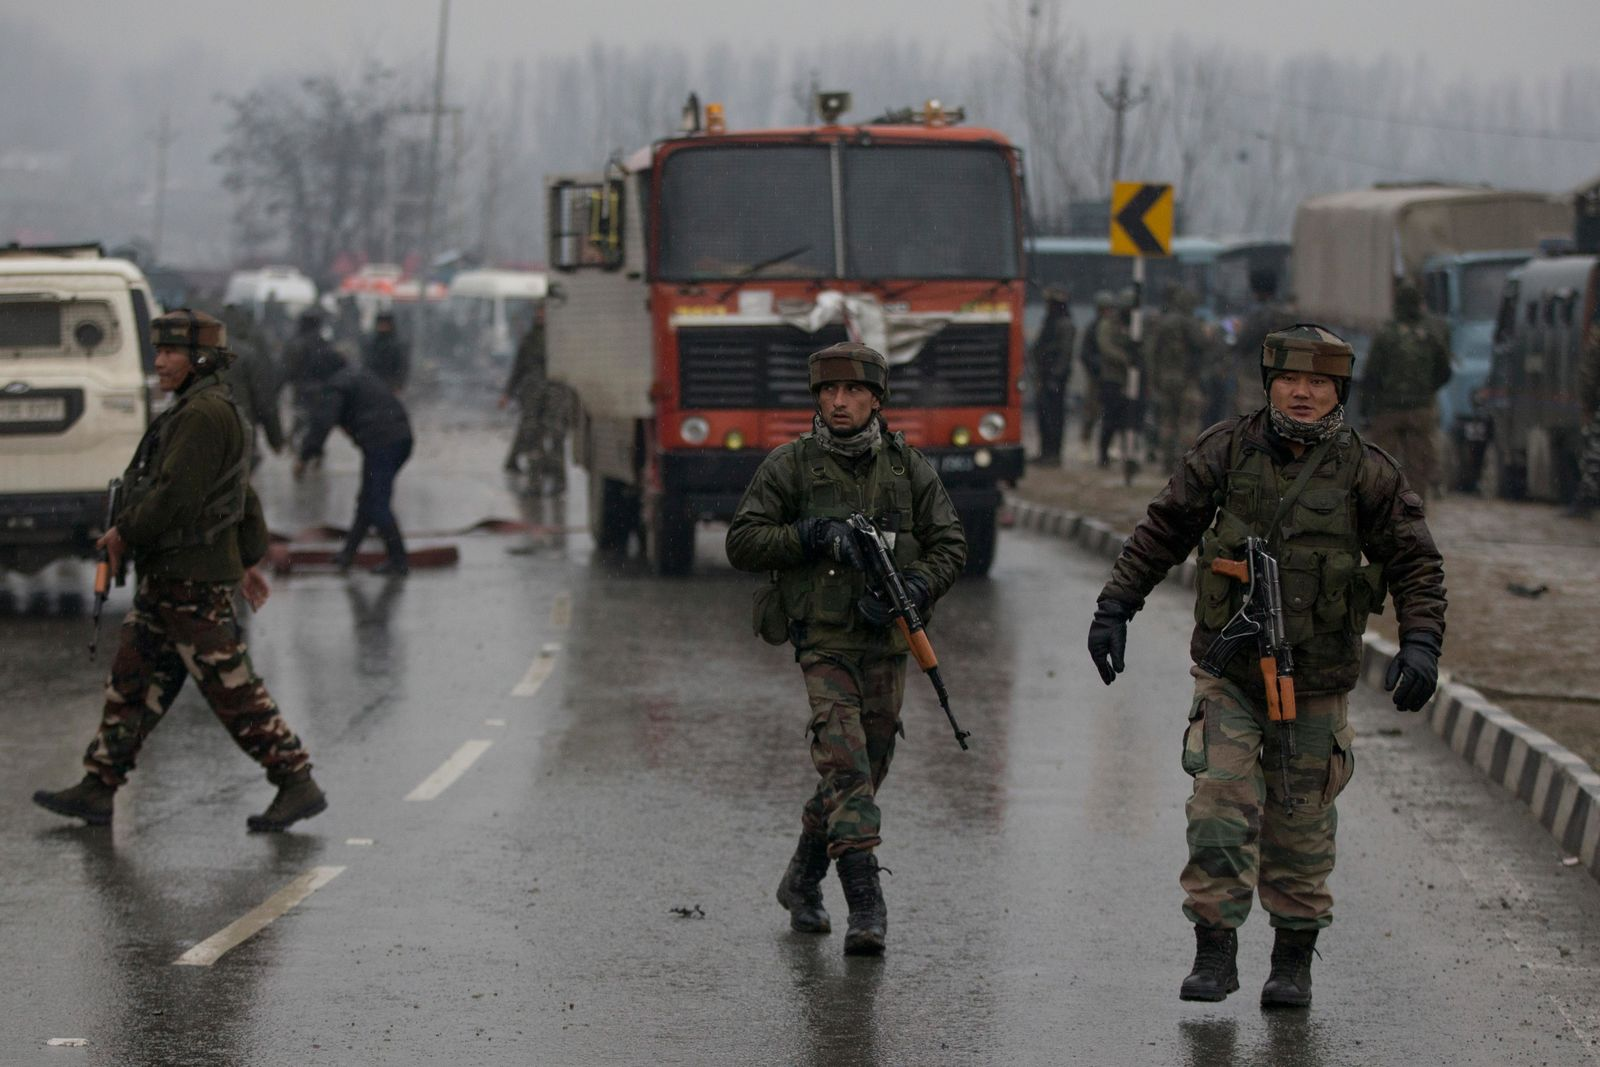 Indian paramilitary soldiers patrol near the site of an explosion in Pampore, Indian-controlled Kashmir, Thursday, Feb. 14, 2019. . (AP Photo/Dar Yasin)